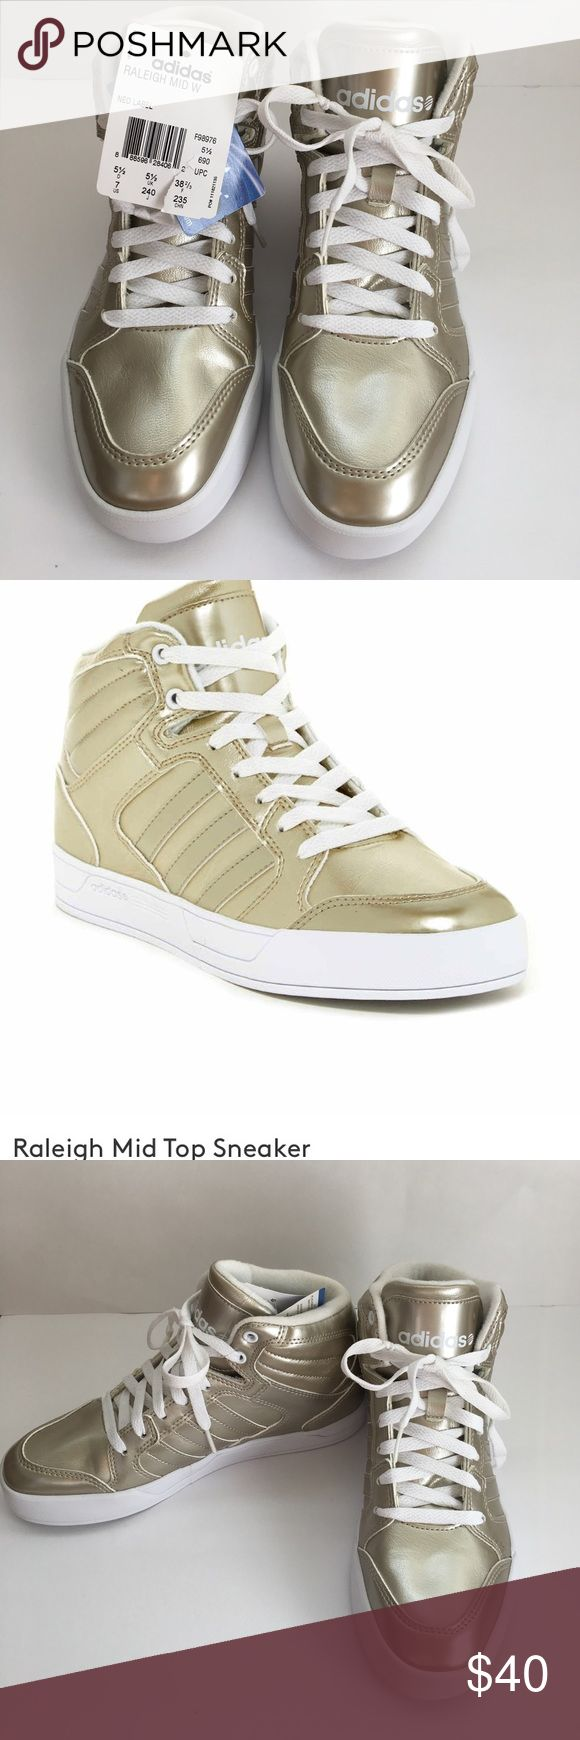 *Adidas* NWT Gold Sneakers 7 Raleigh Mid Top Sneakers from Adidas in US 7. Brand New Tags attached. Neo Label Ortholite Performance Insoles. Adidas Shoes Sneakers